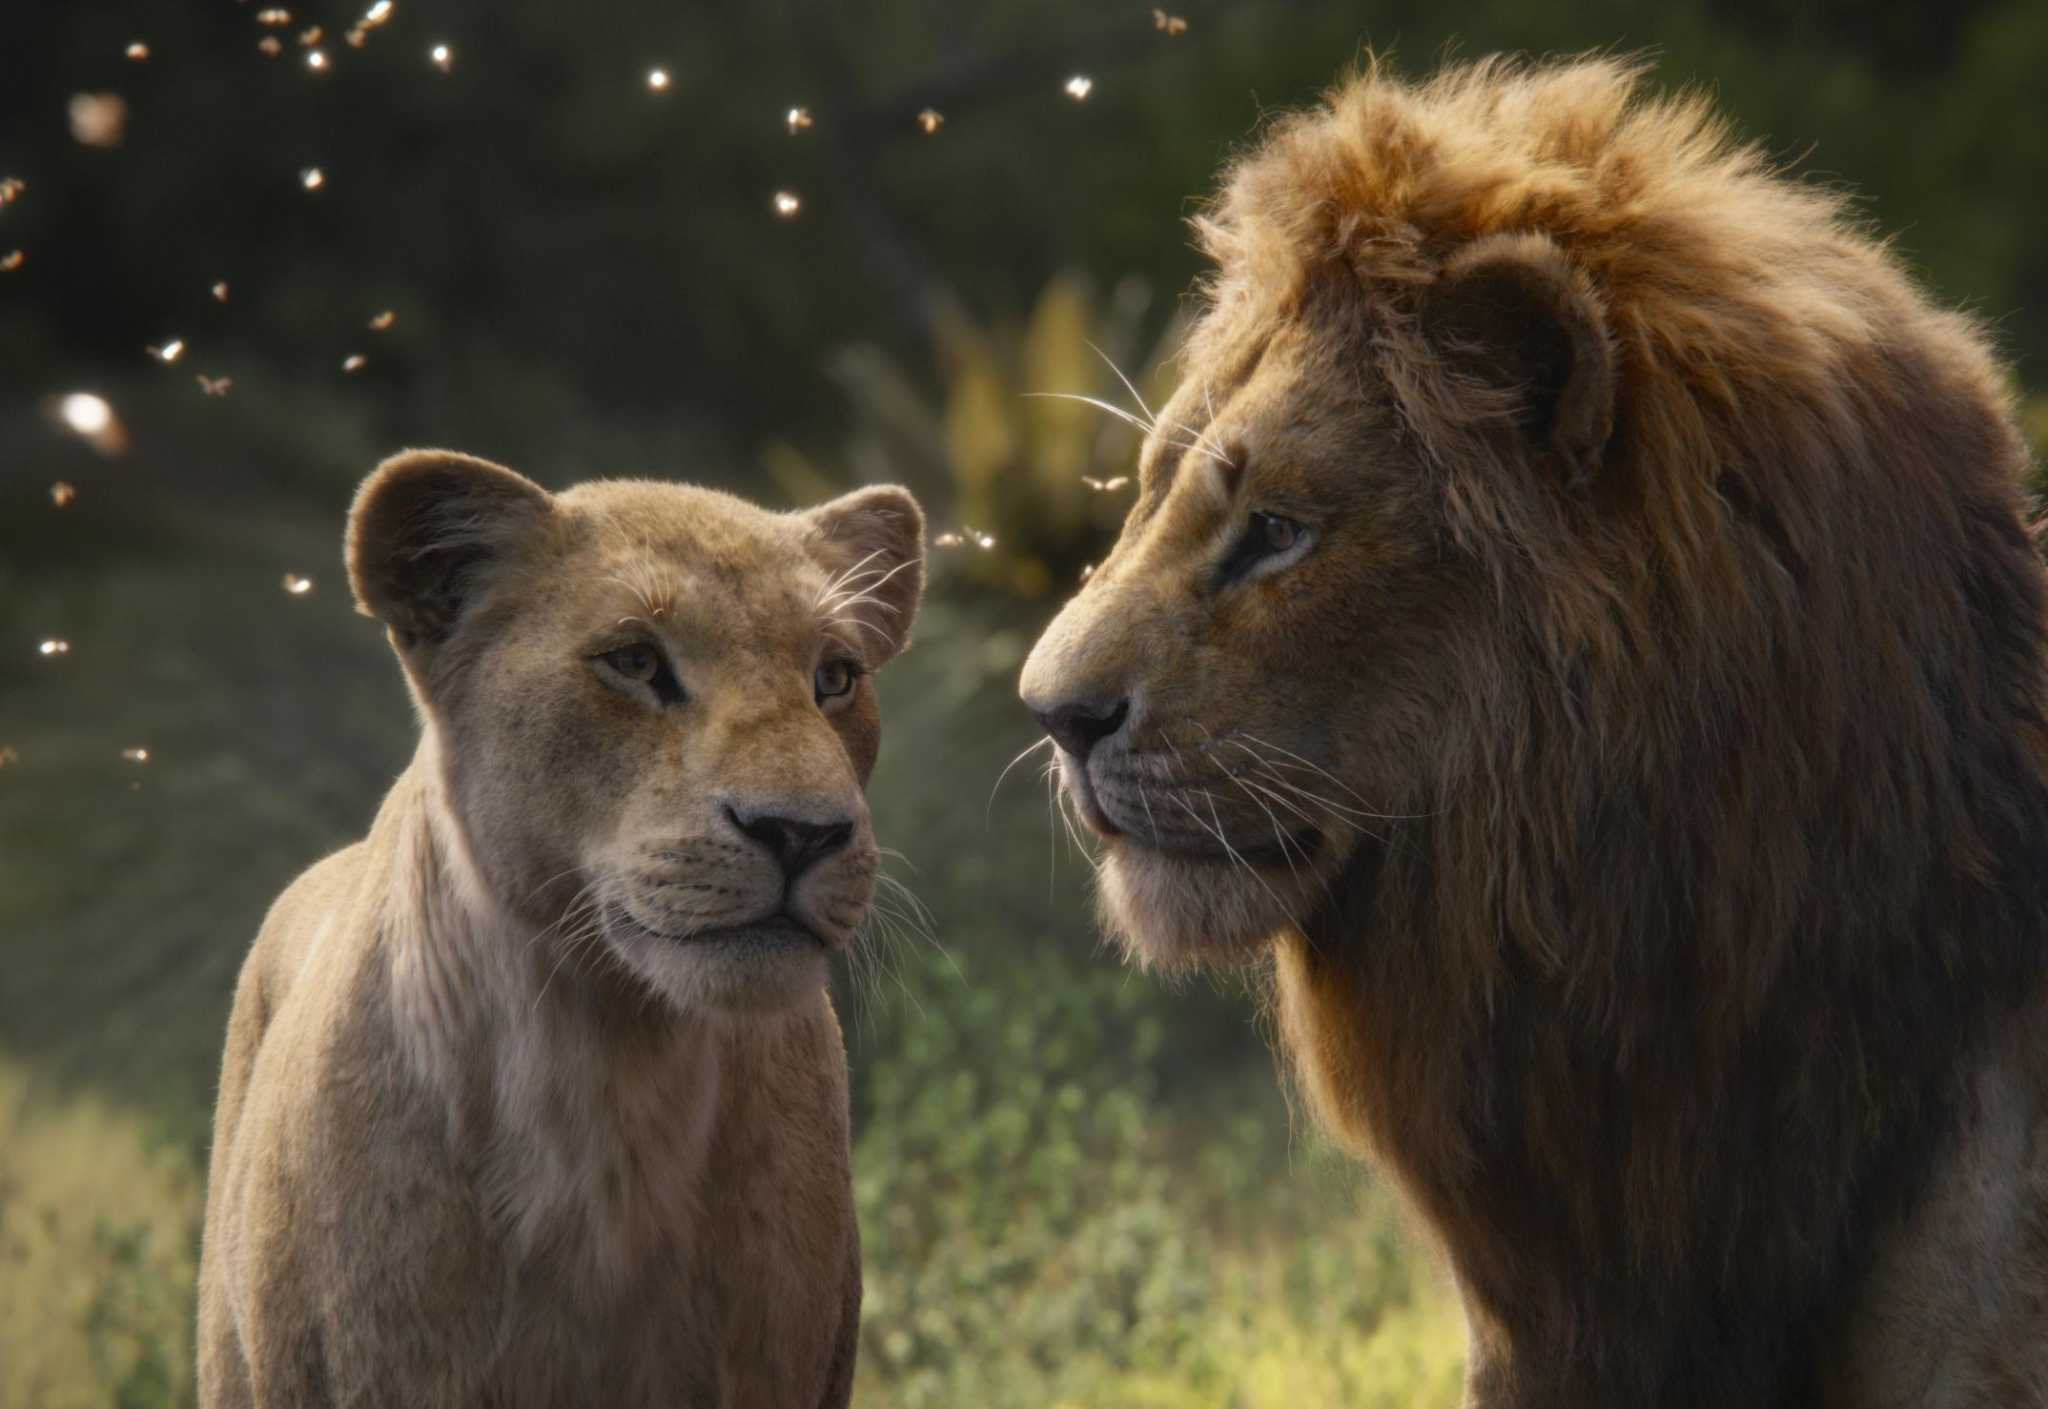 Now streaming: 'The Lion King' on digital today